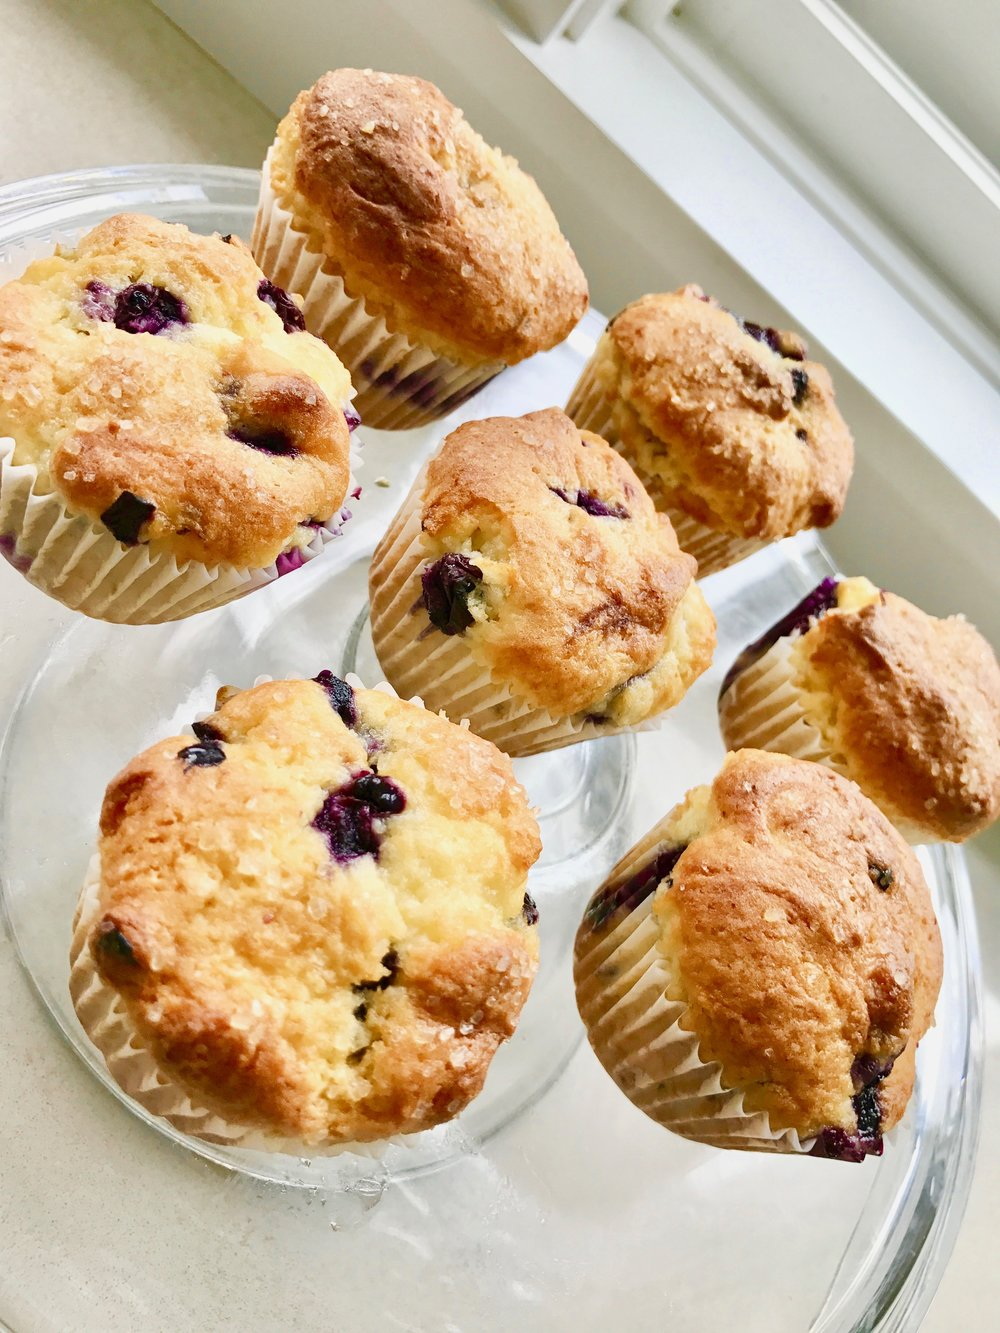 Okay, I do occasionally make blueberry muffins, from time to time…